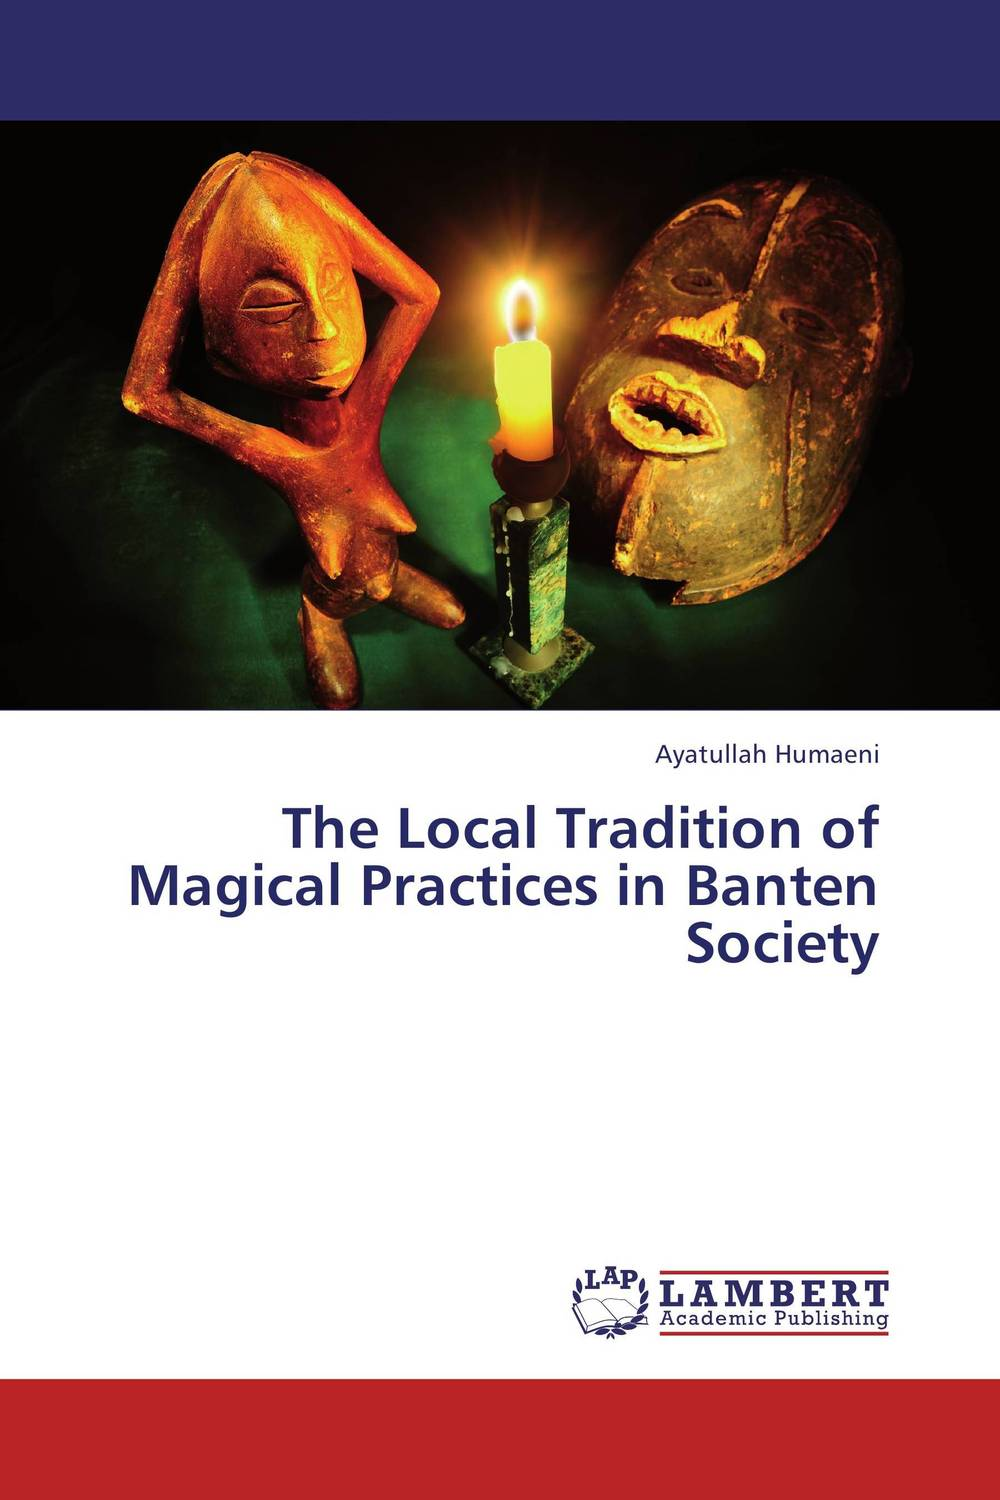 The Local Tradition of Magical Practices in Banten Society the application of global ethics to solve local improprieties